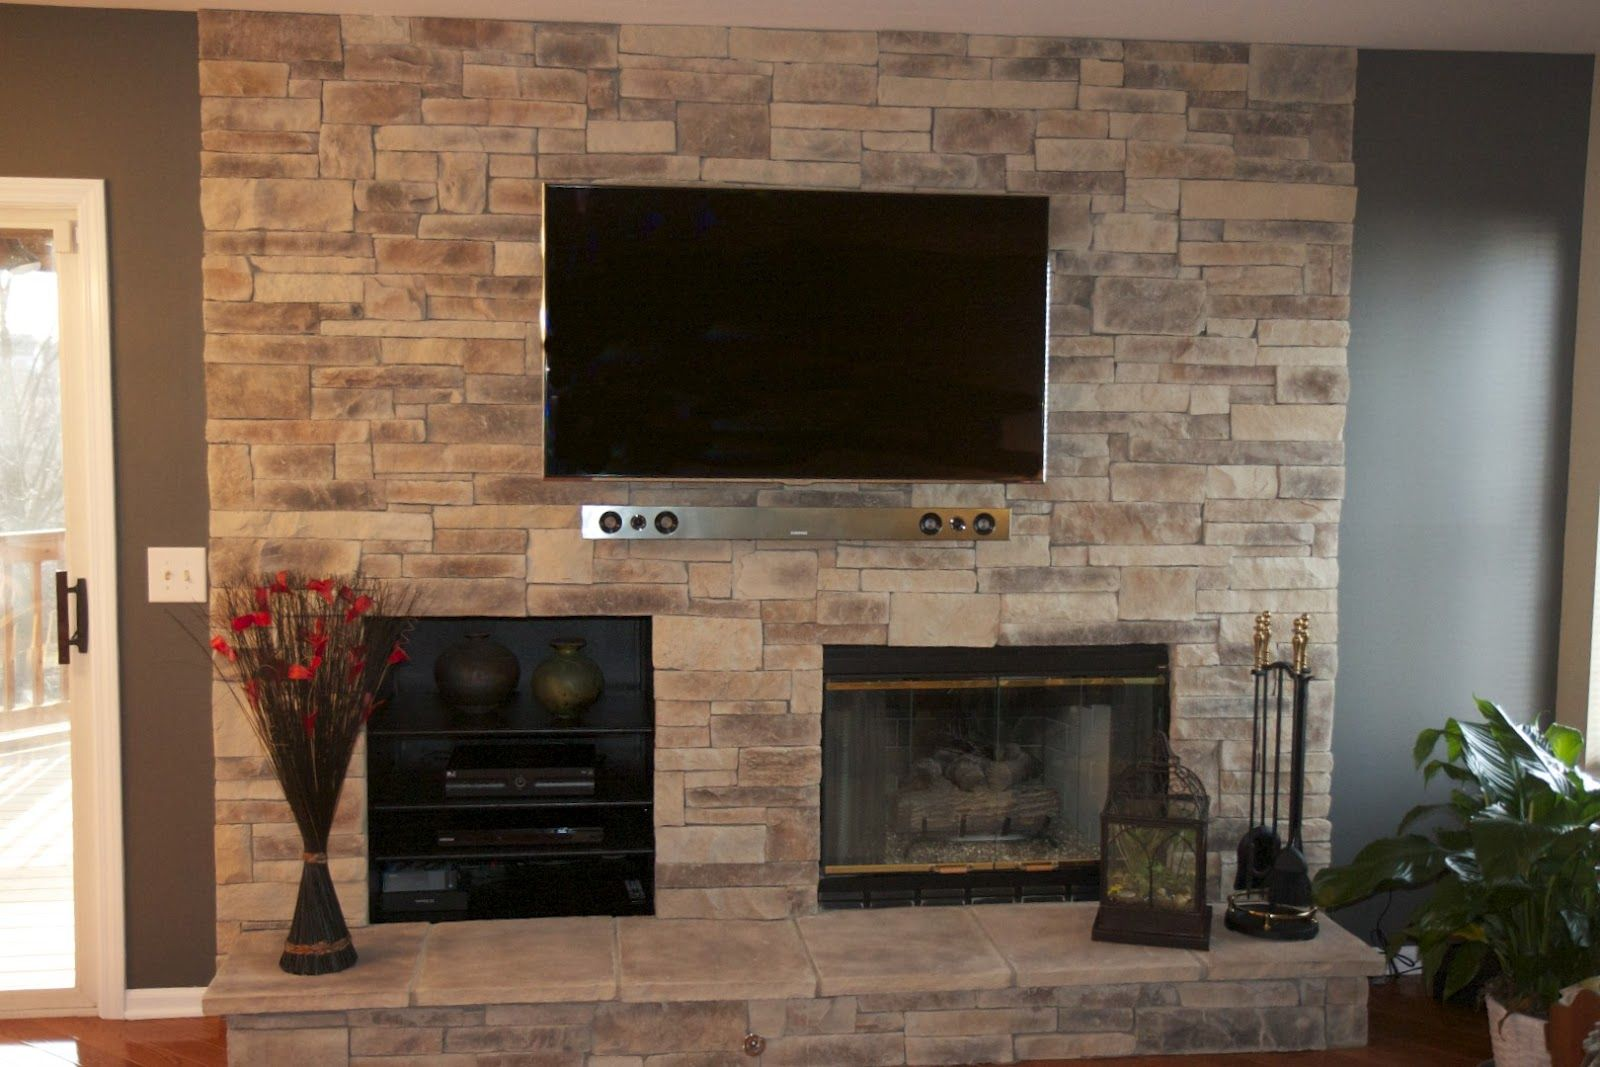 Feature walls with tv and fireplace inspiring stone fireplace wall ideas with cream brick - Feature wall ideas living room with fireplace ...